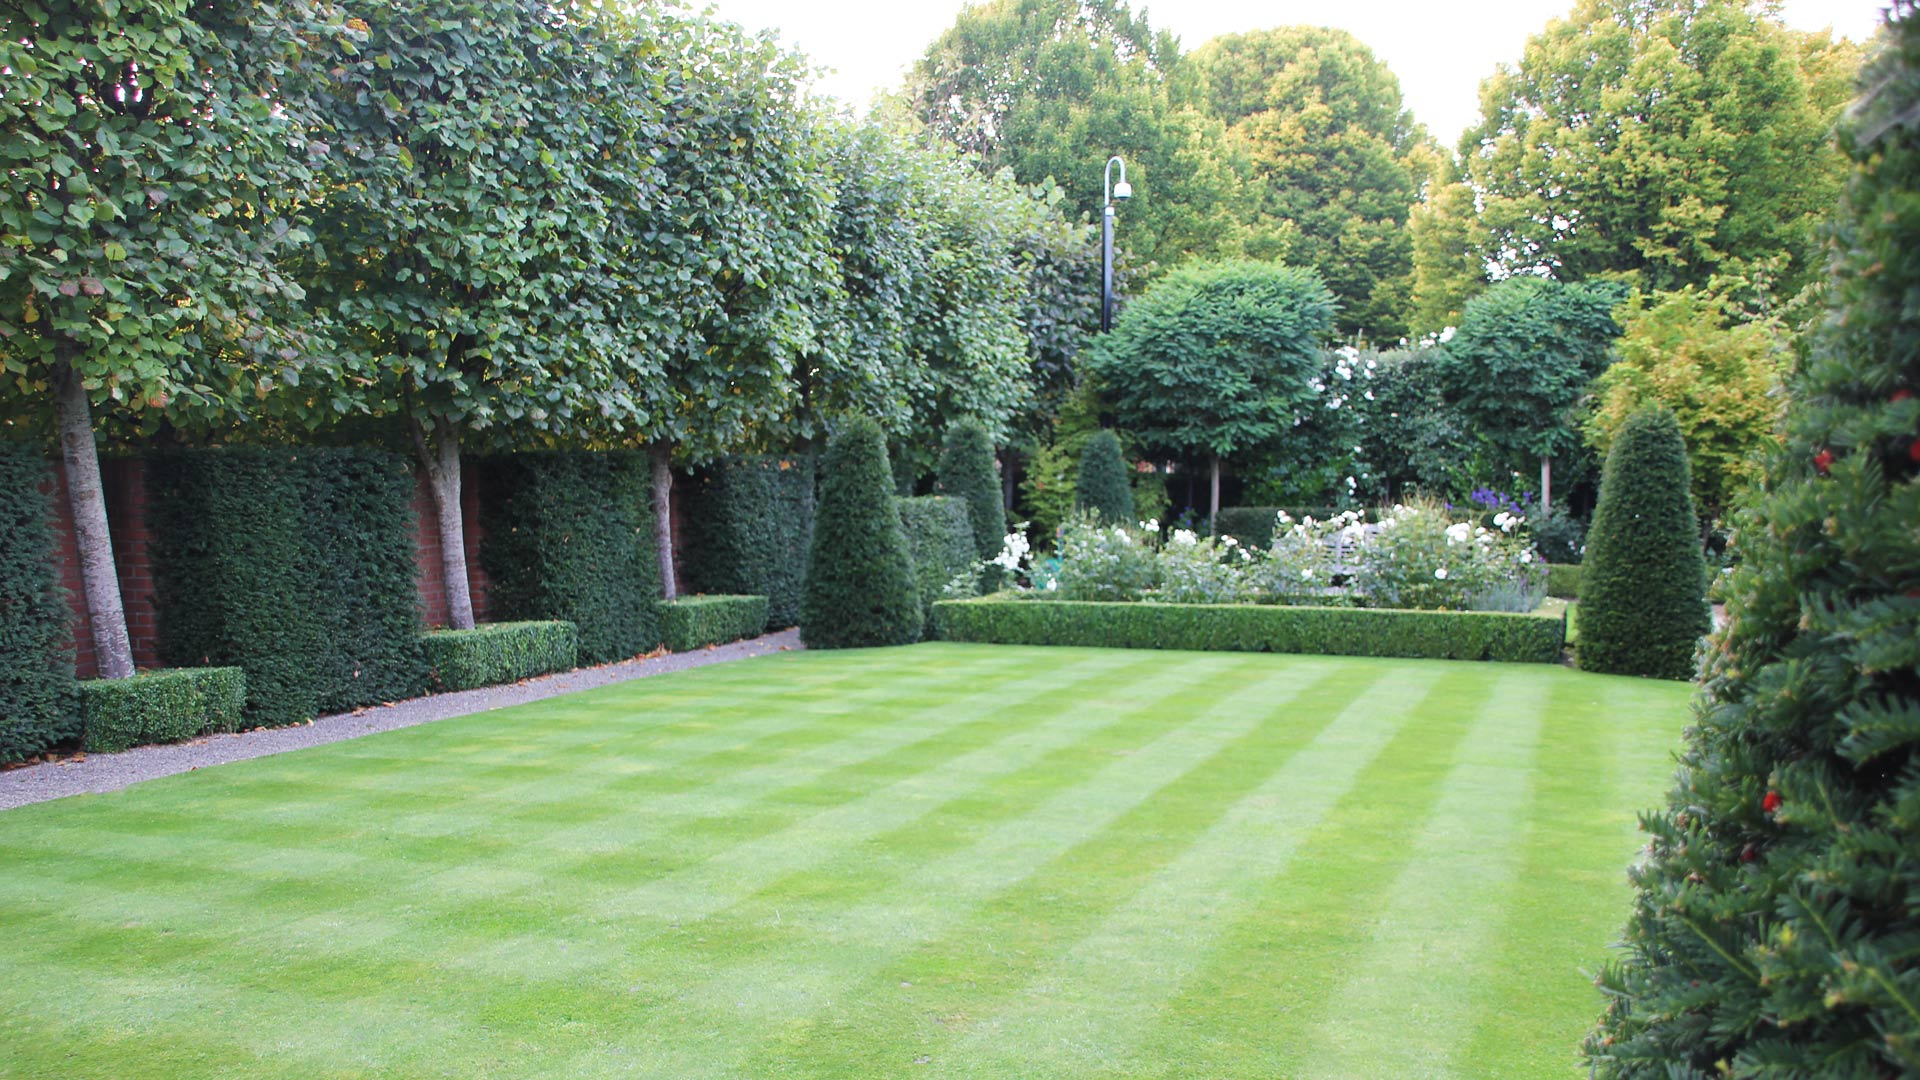 Lawn care service damian costello garden design for Lawn landscape design